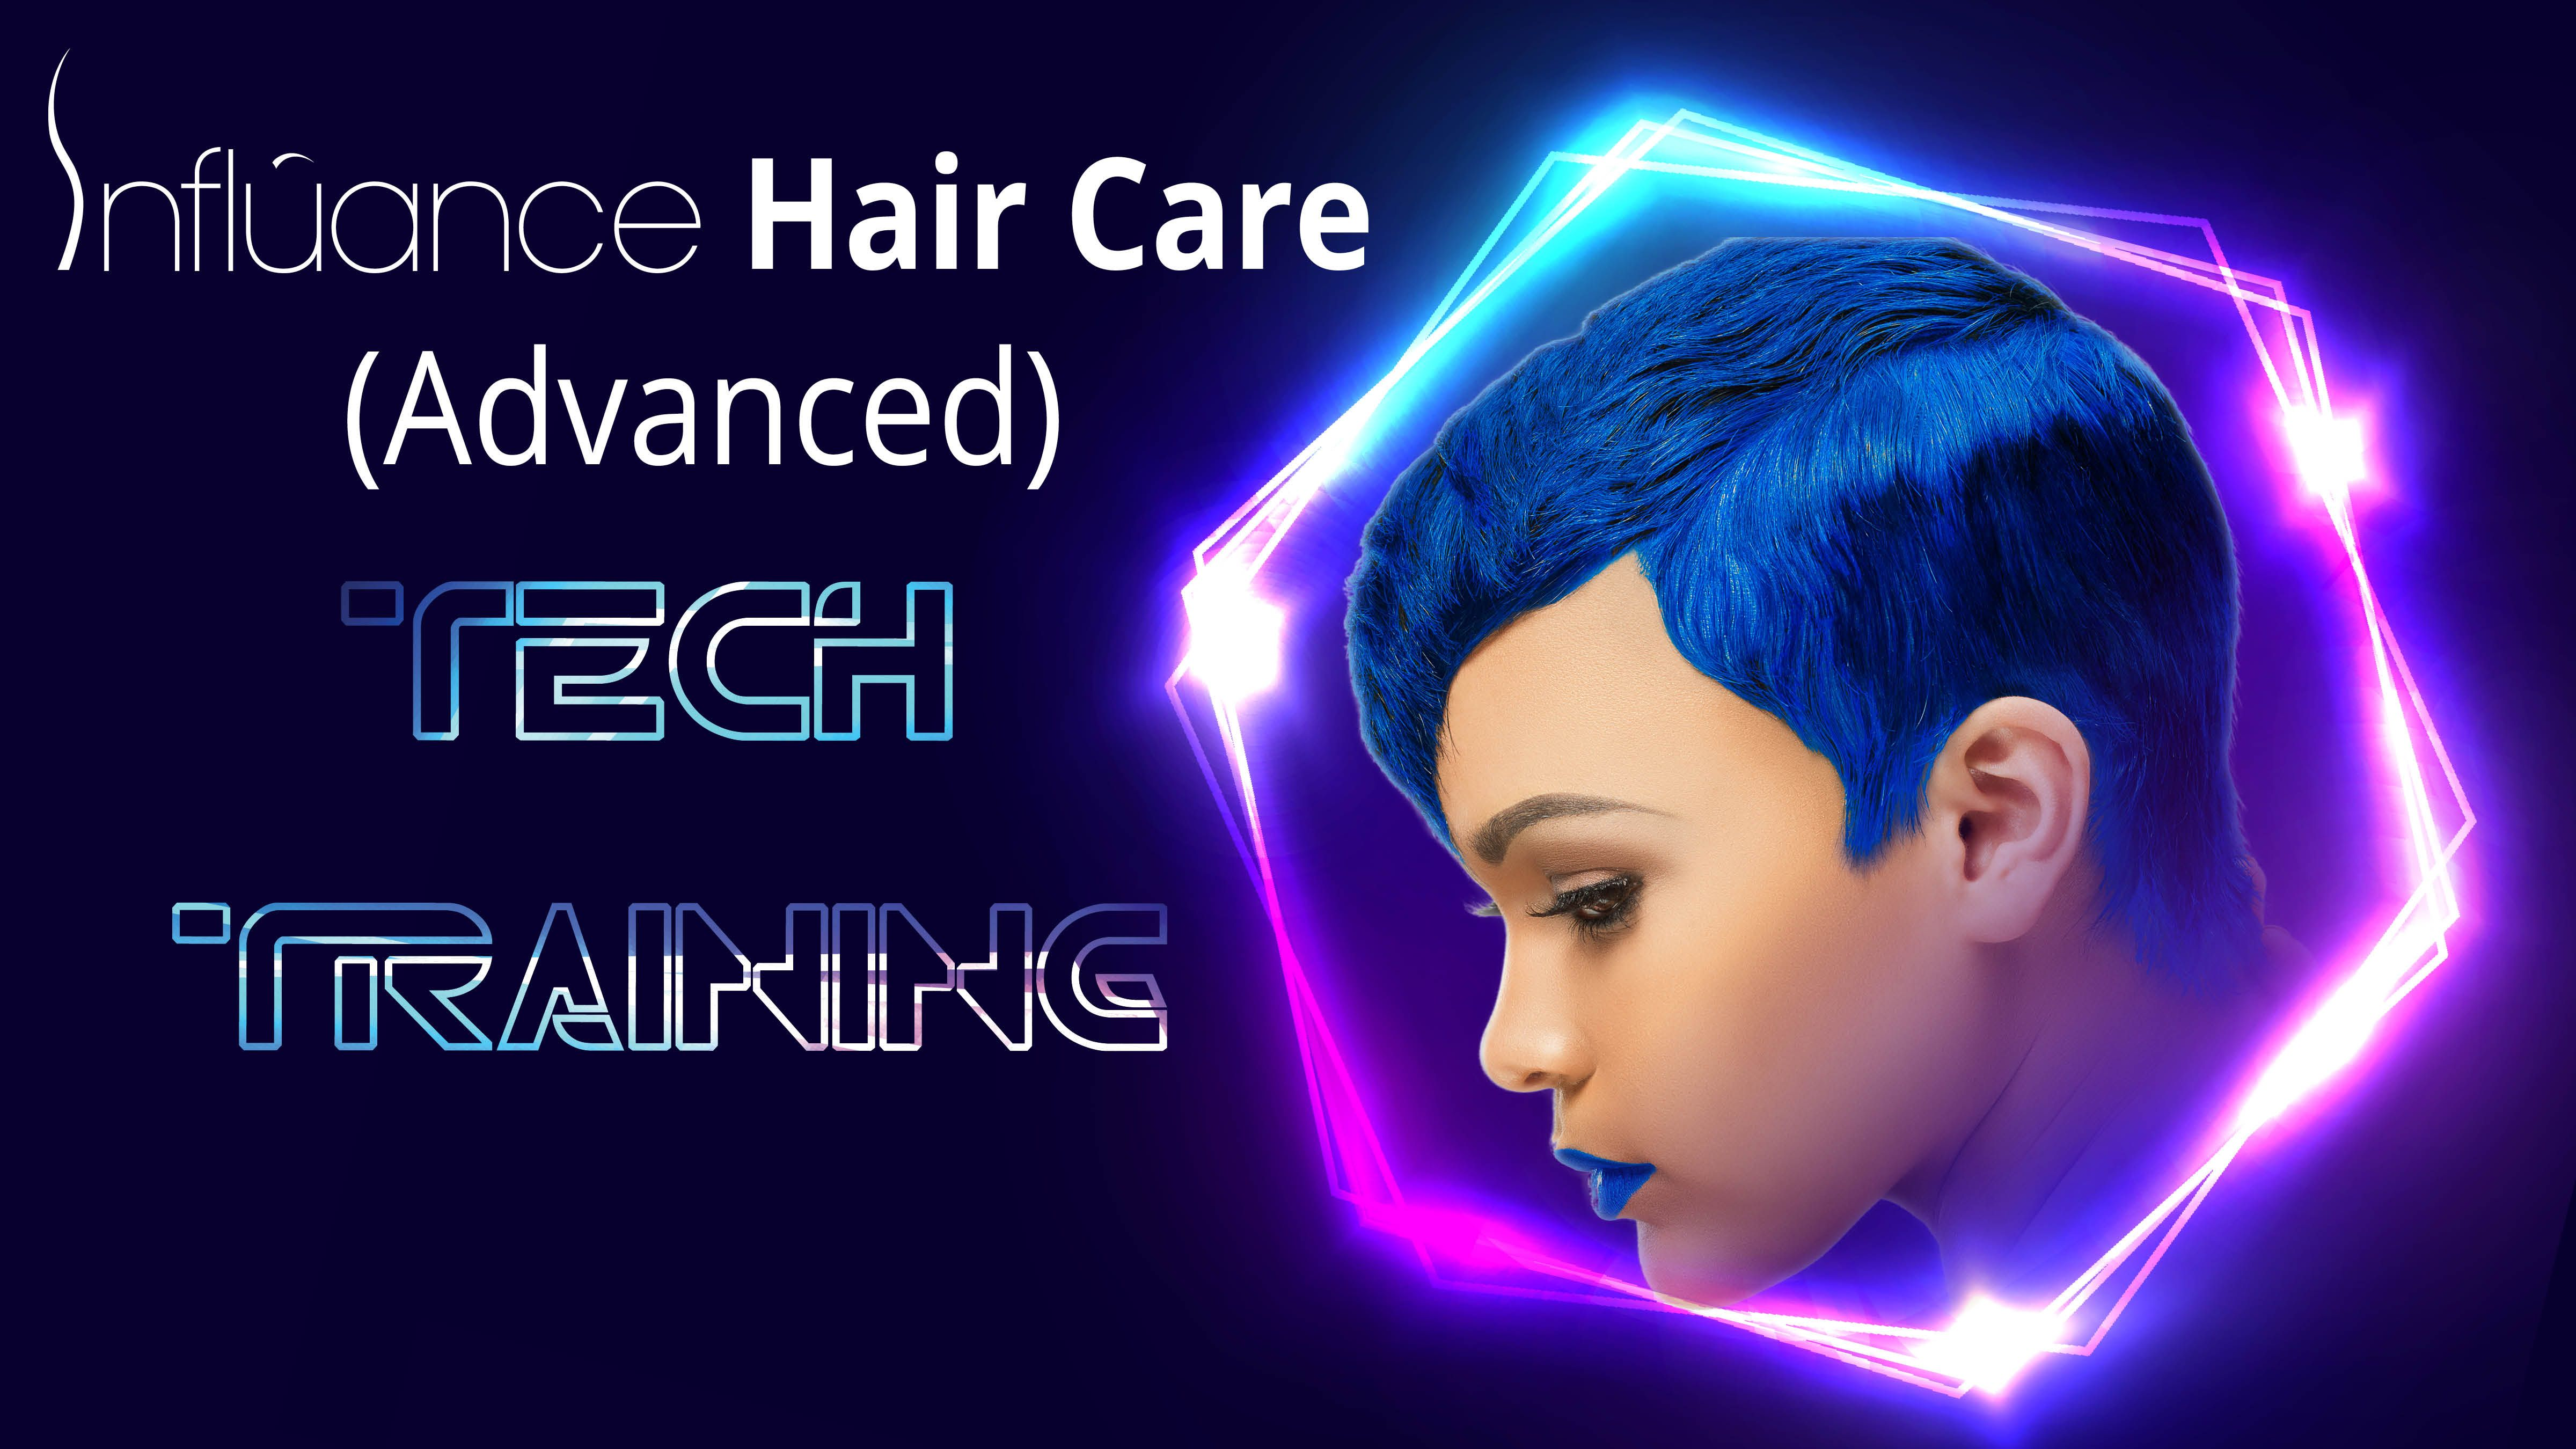 Never stop learning with Influance Hair Care Seminars, In